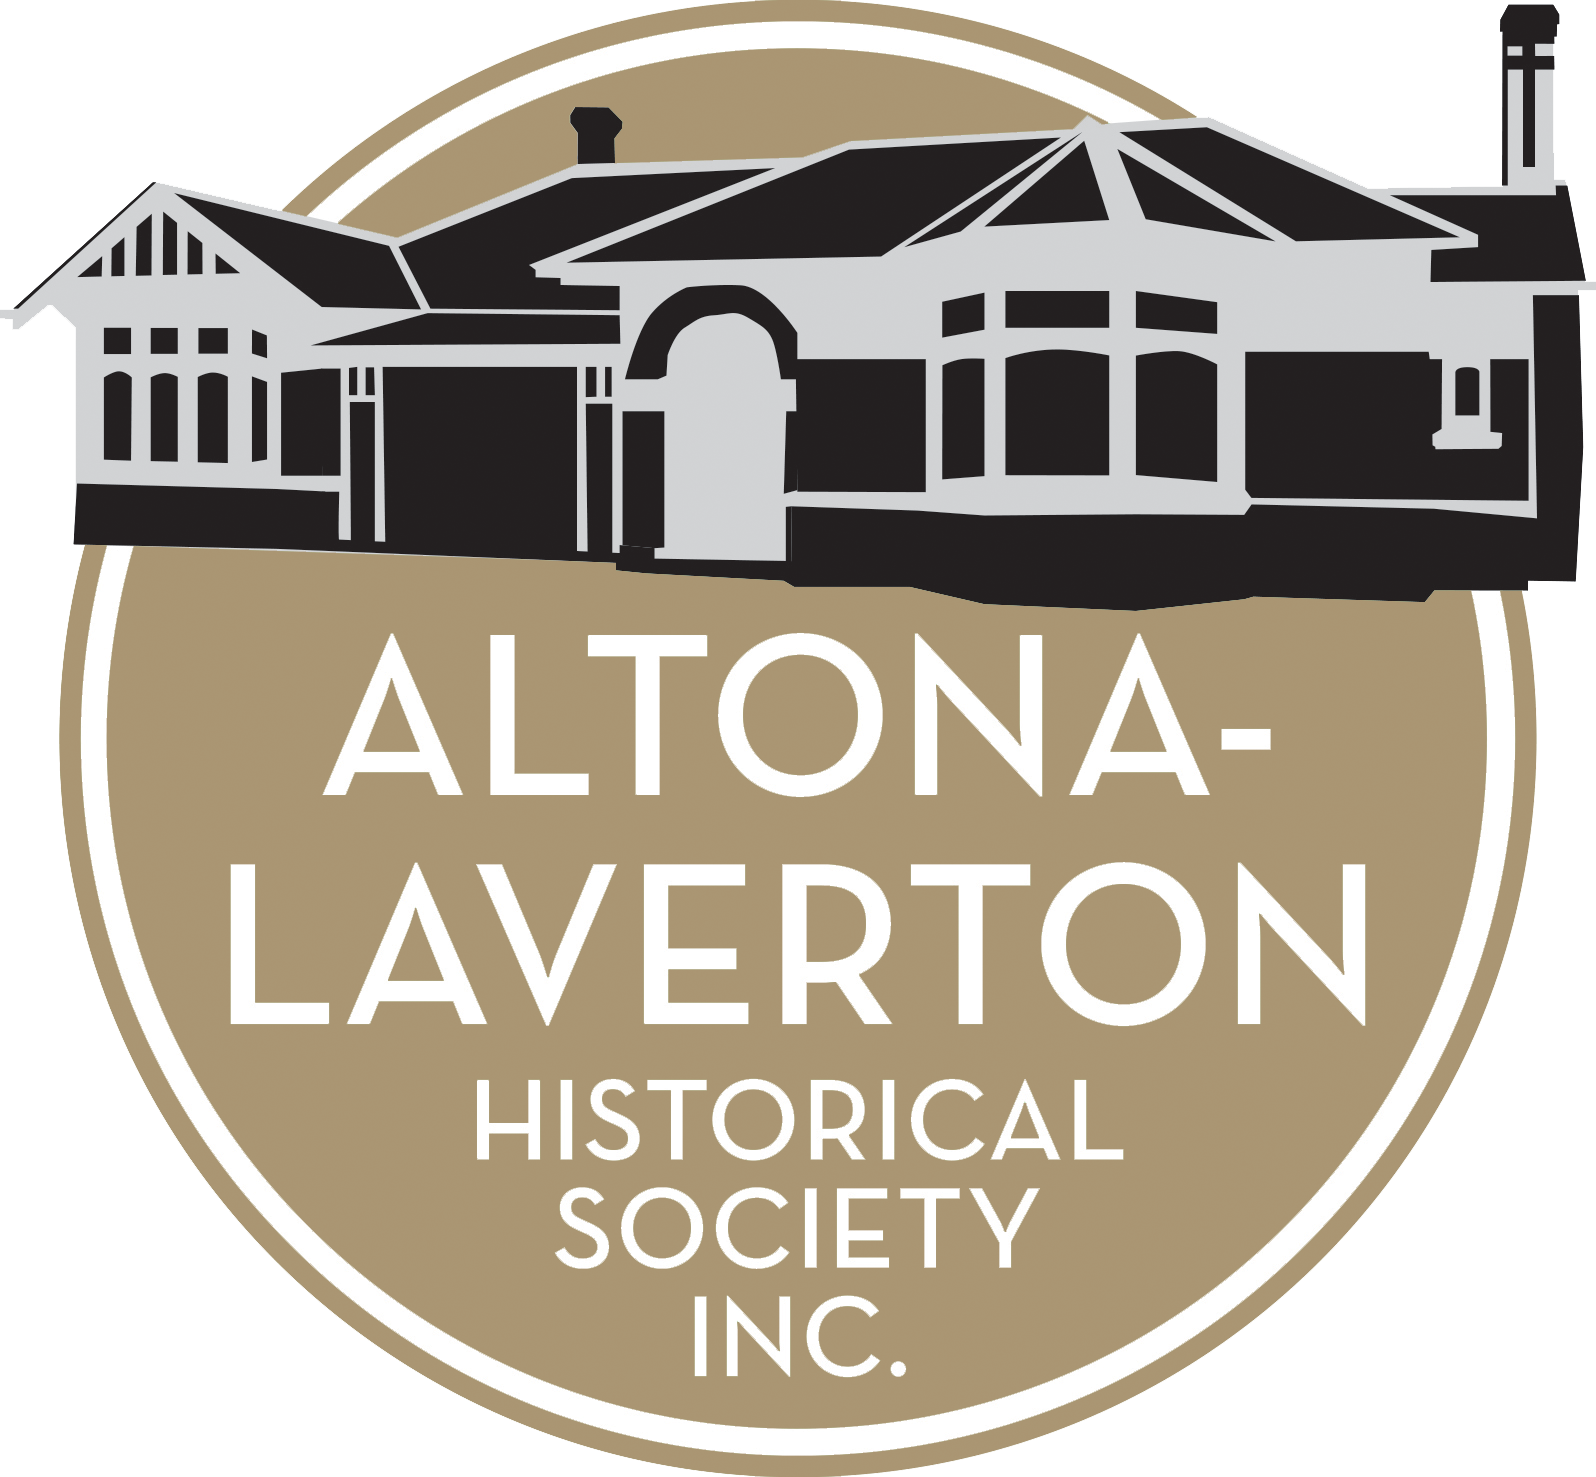 Altona-Laverton Historical Society